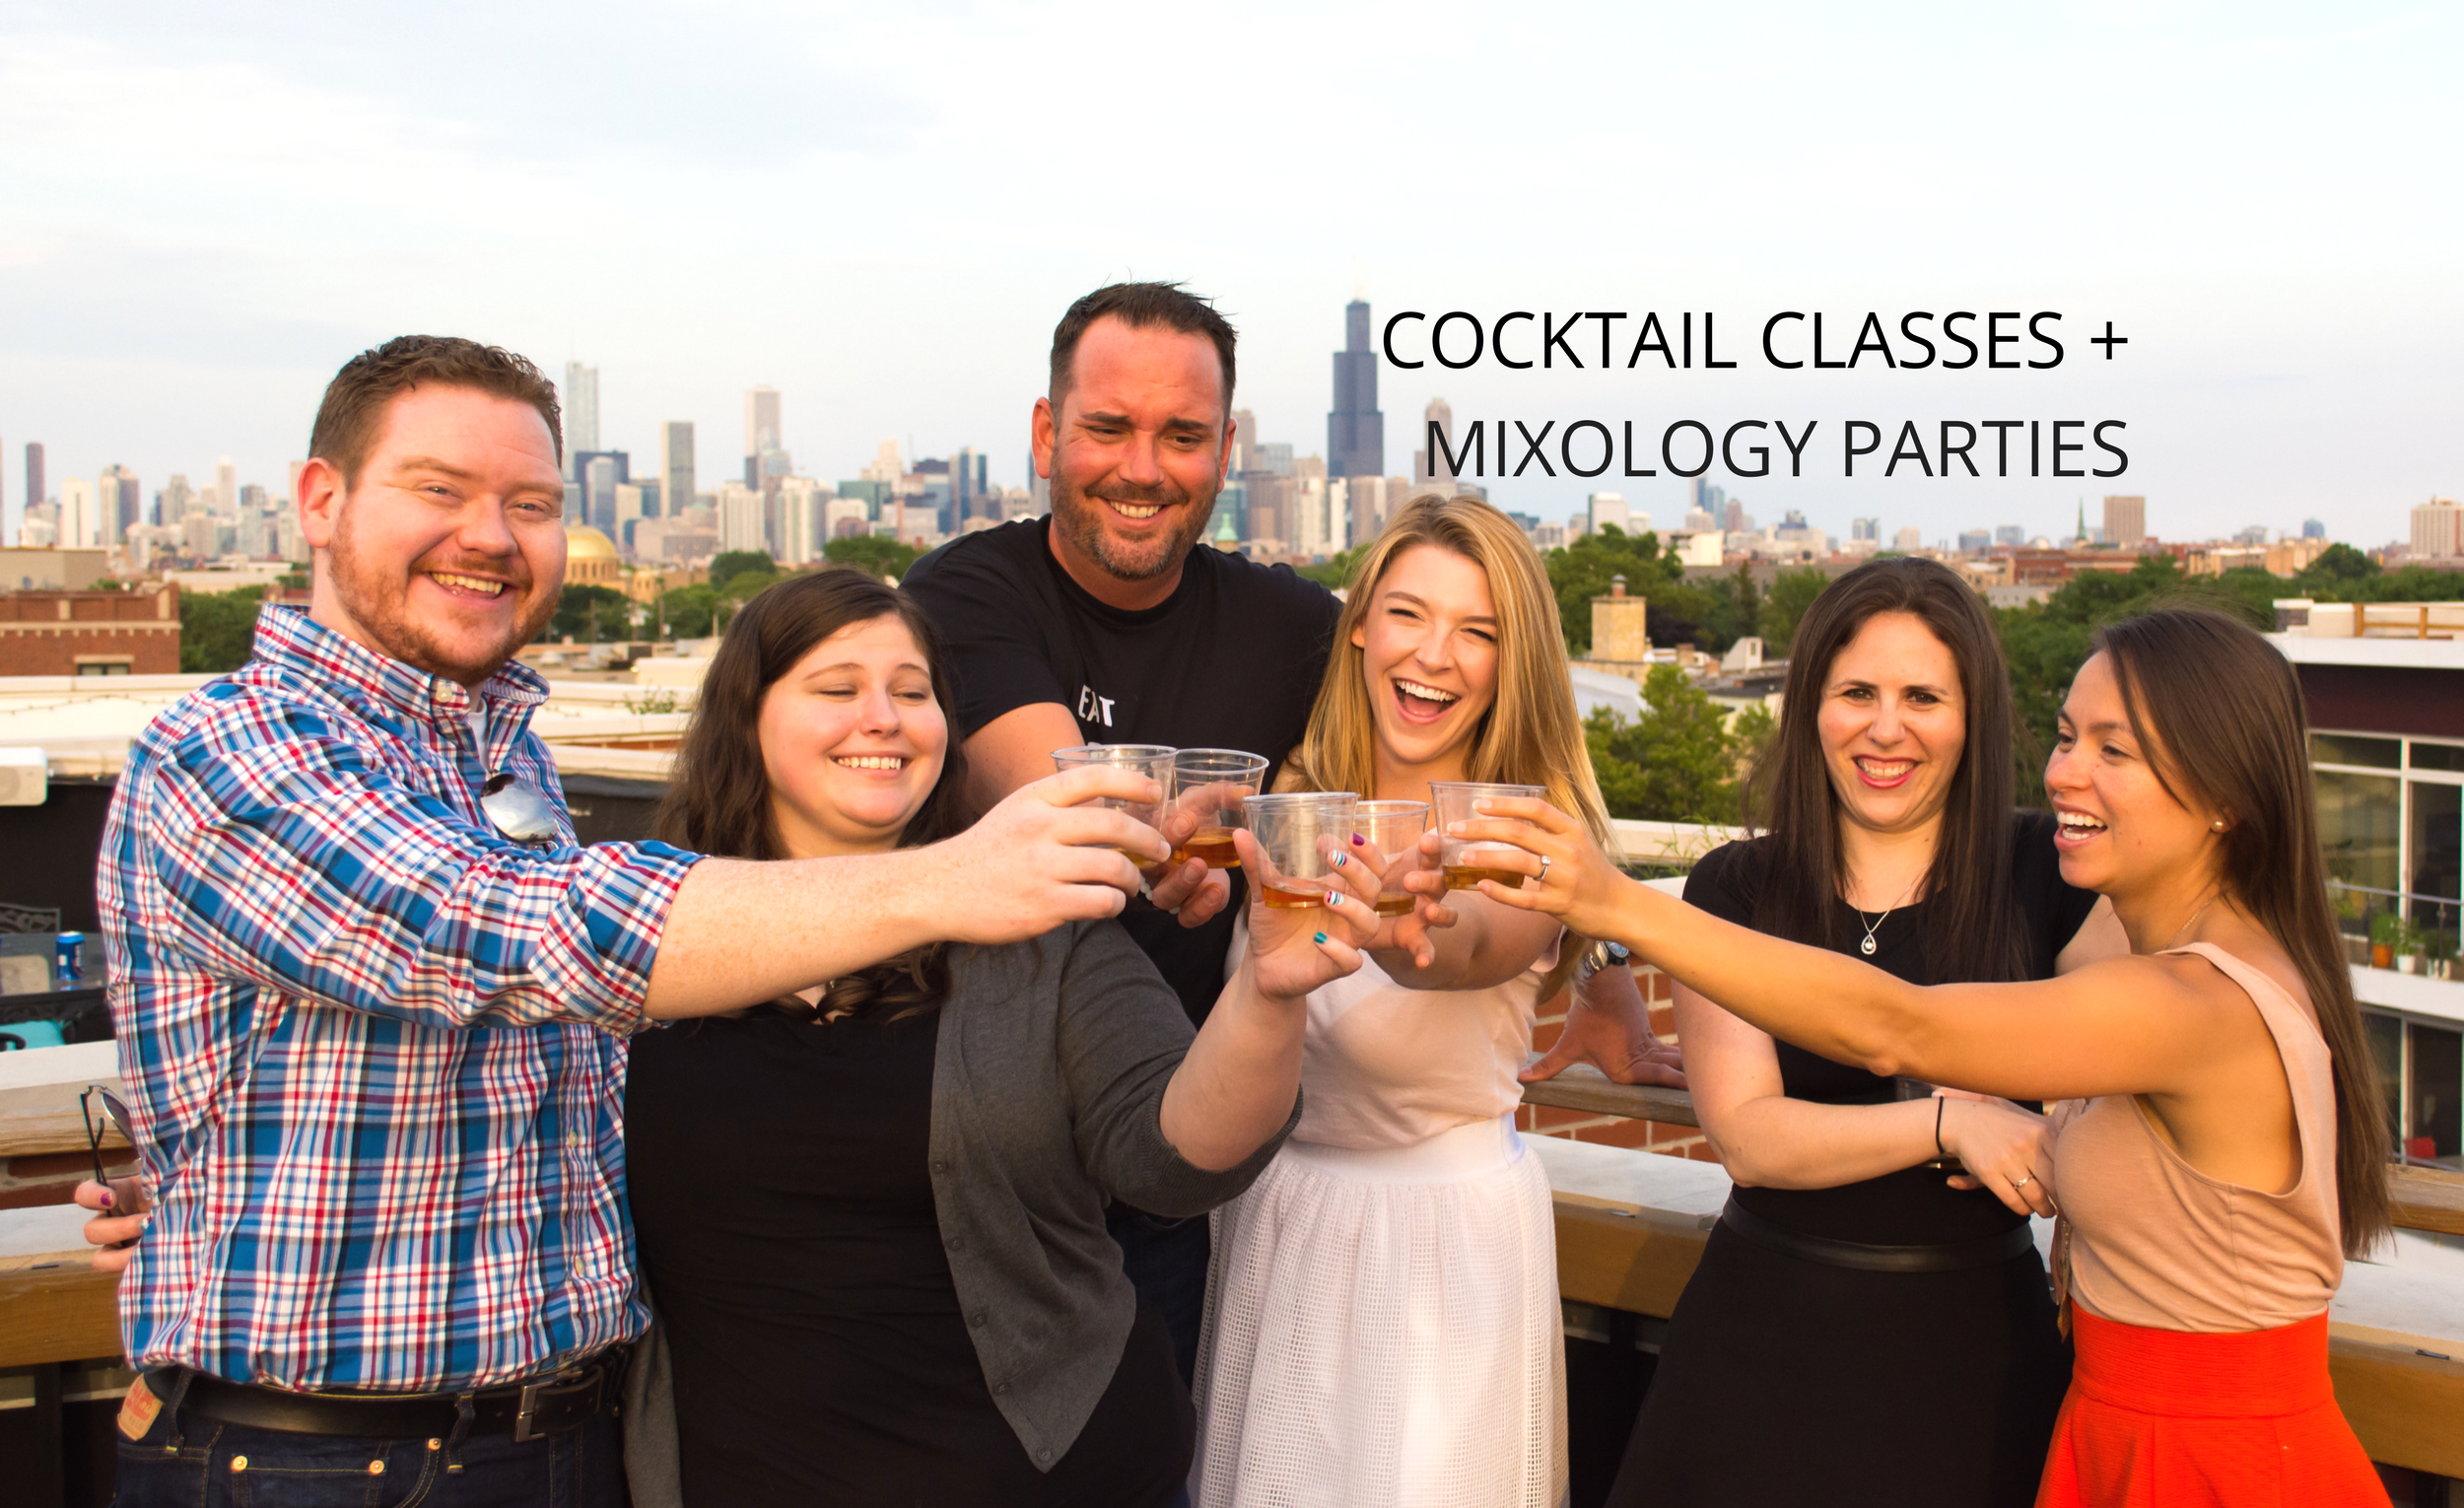 Rooftop Mixology 101 Class: Liquid Confidence. Rooftop Mixology 101 Class: Liquid Confidence